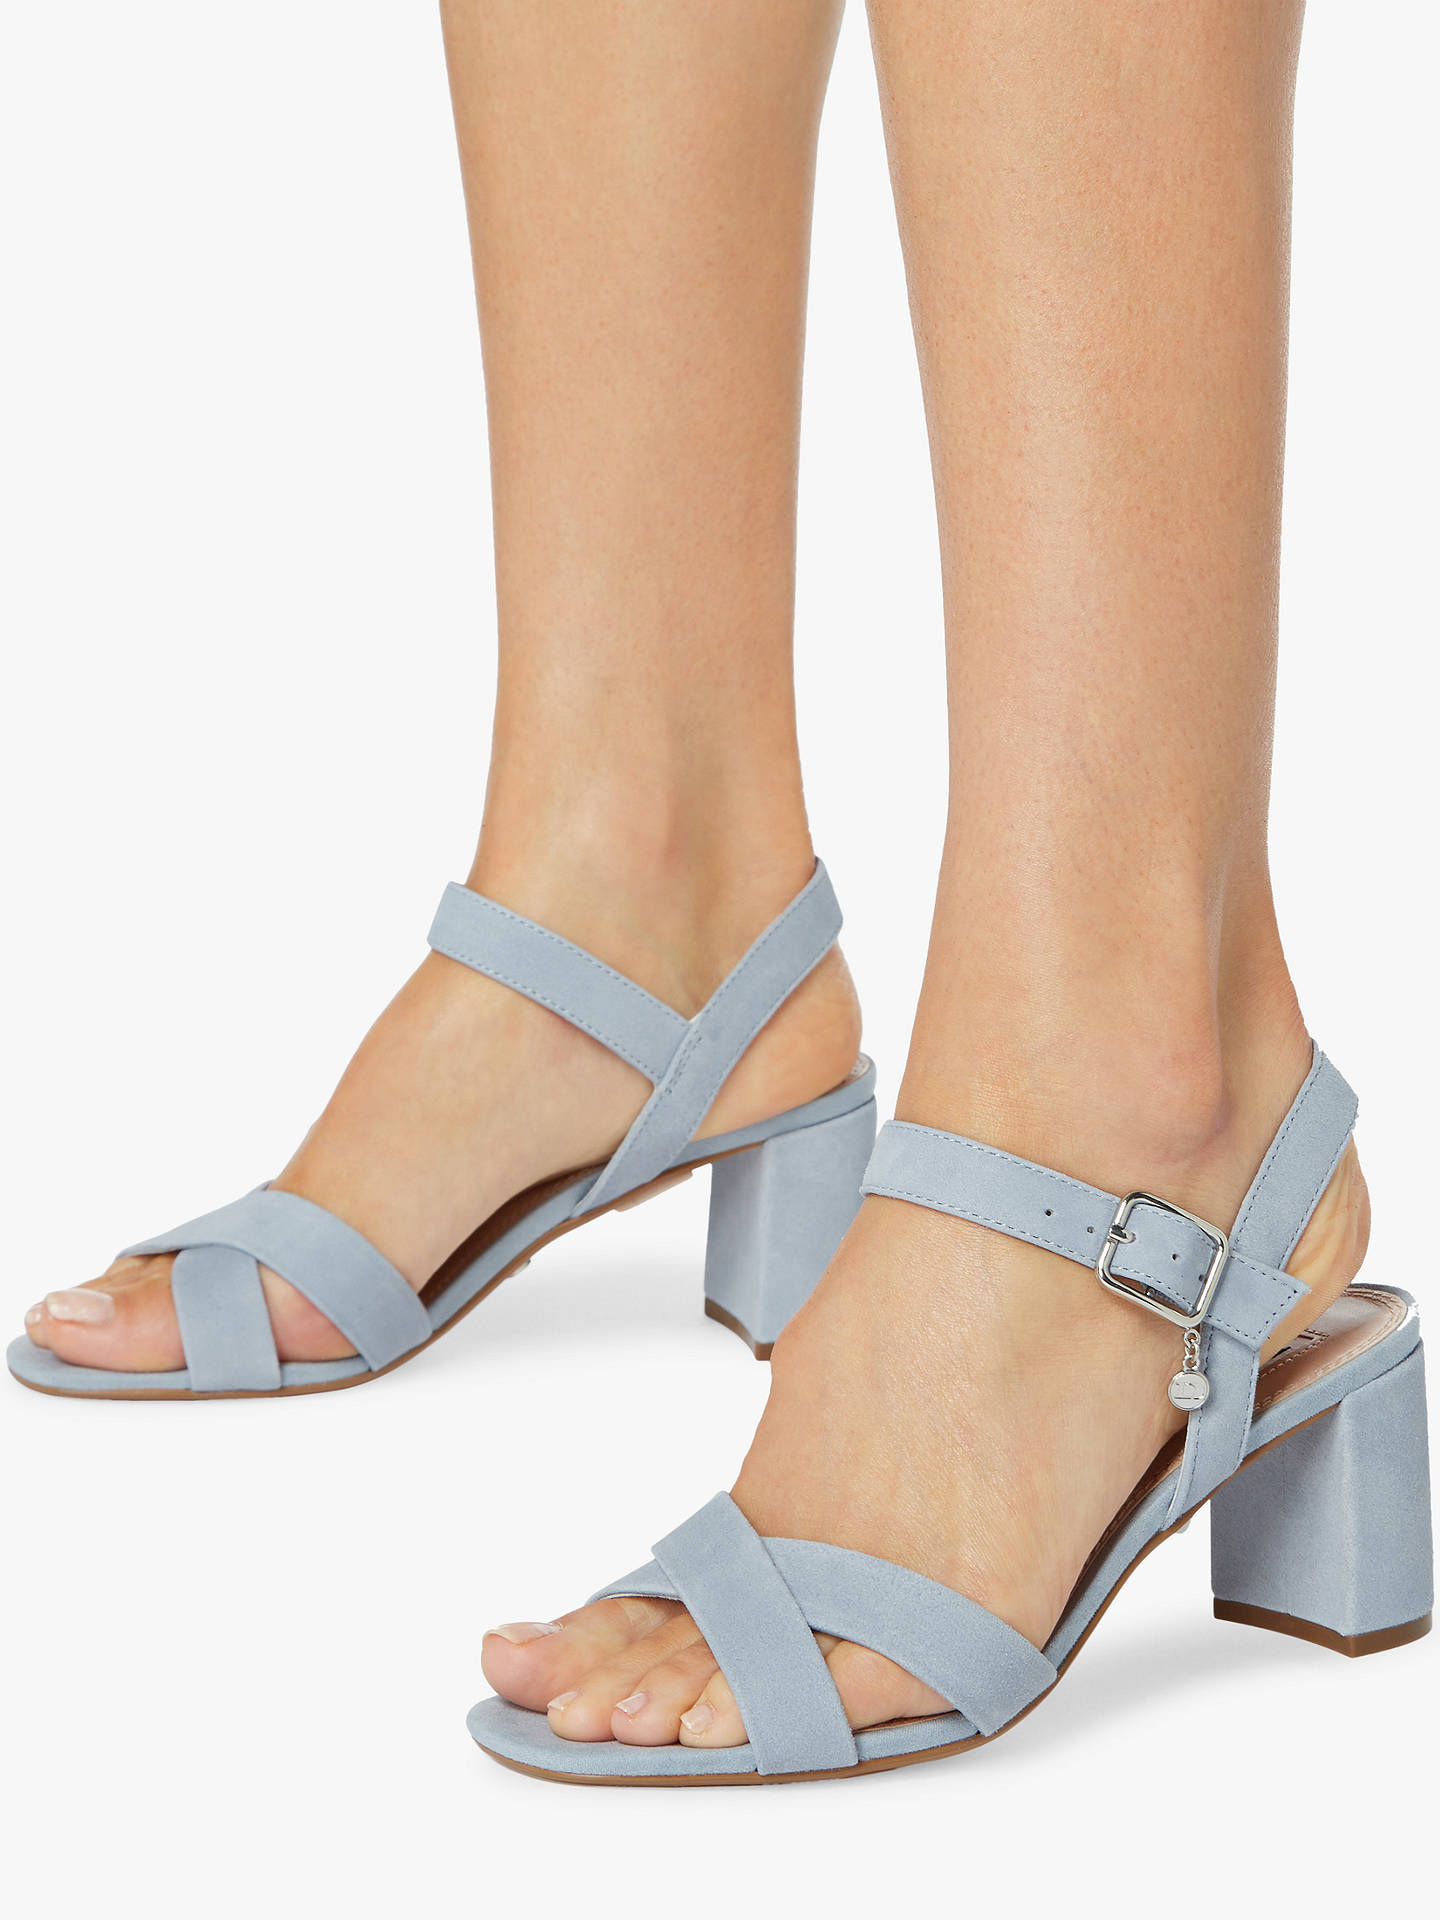 a198348103c5 Dune Megz Cross Strap Block Heel Sandals at John Lewis   Partners